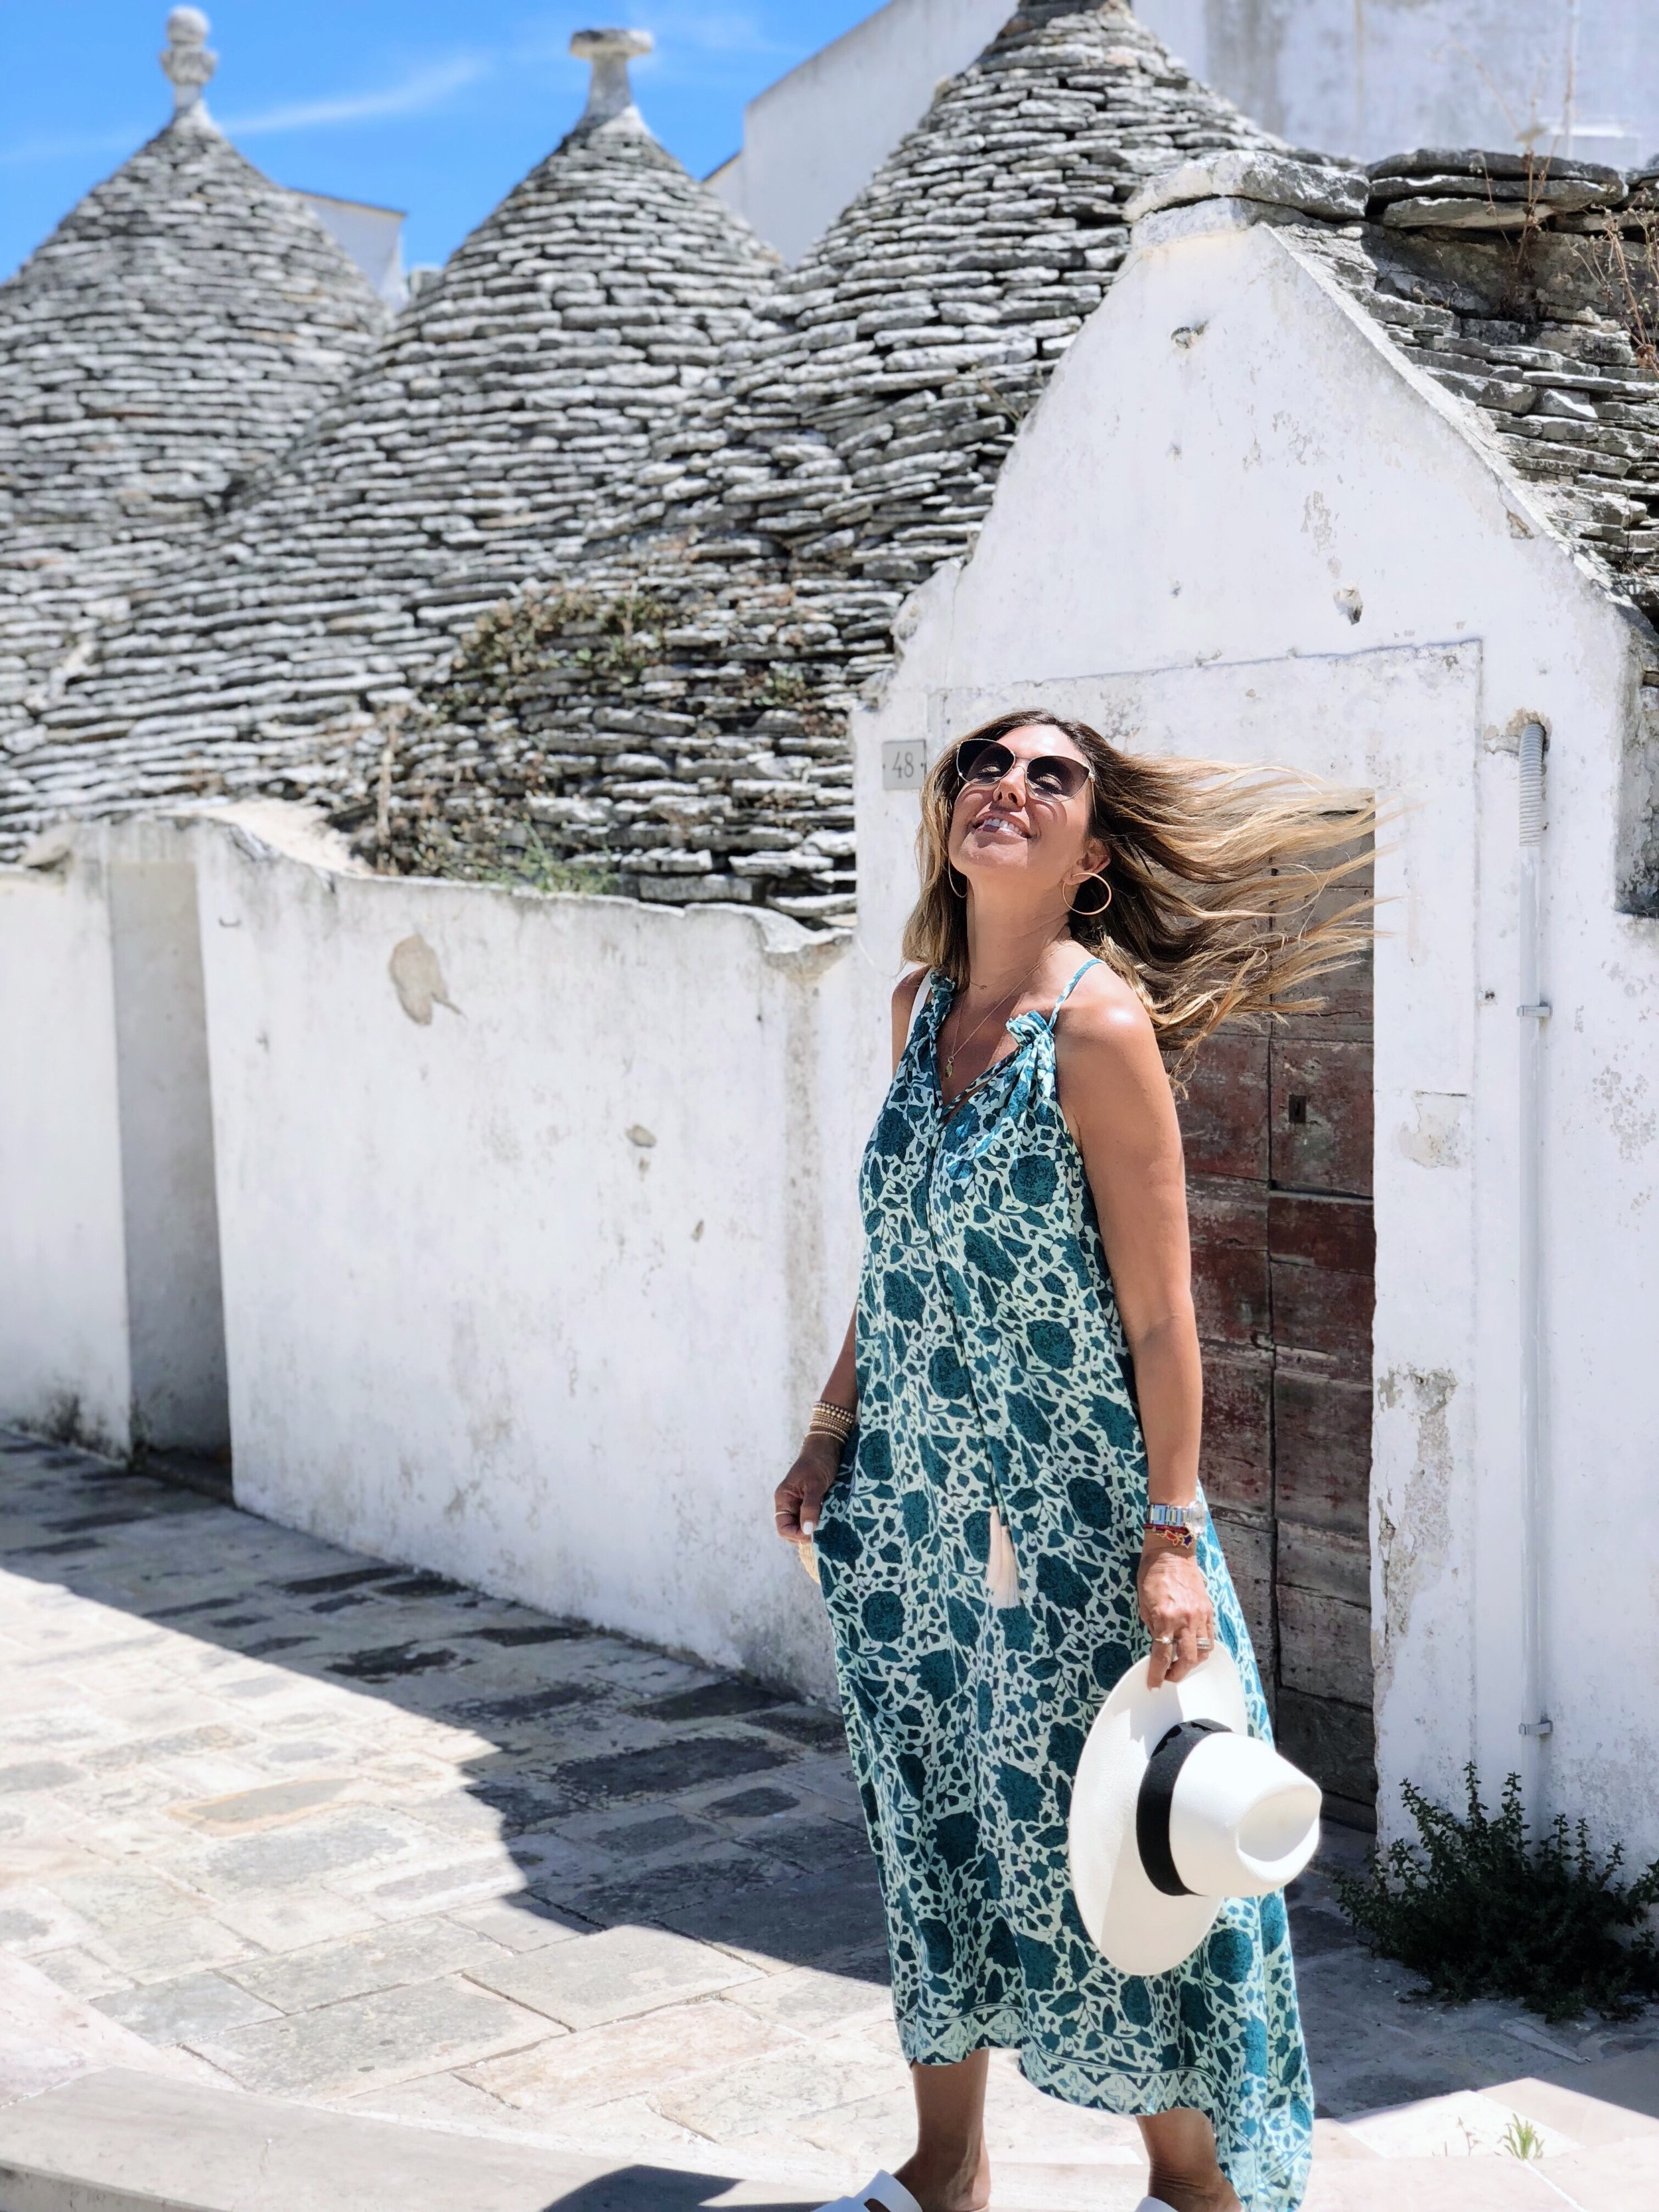 Visit to  Alberobello  .  Dress by  Natalie Martin . Sunnies by  Oliver Peoples . Sandals by  Ancient Greek sandals .  Similar dress here.